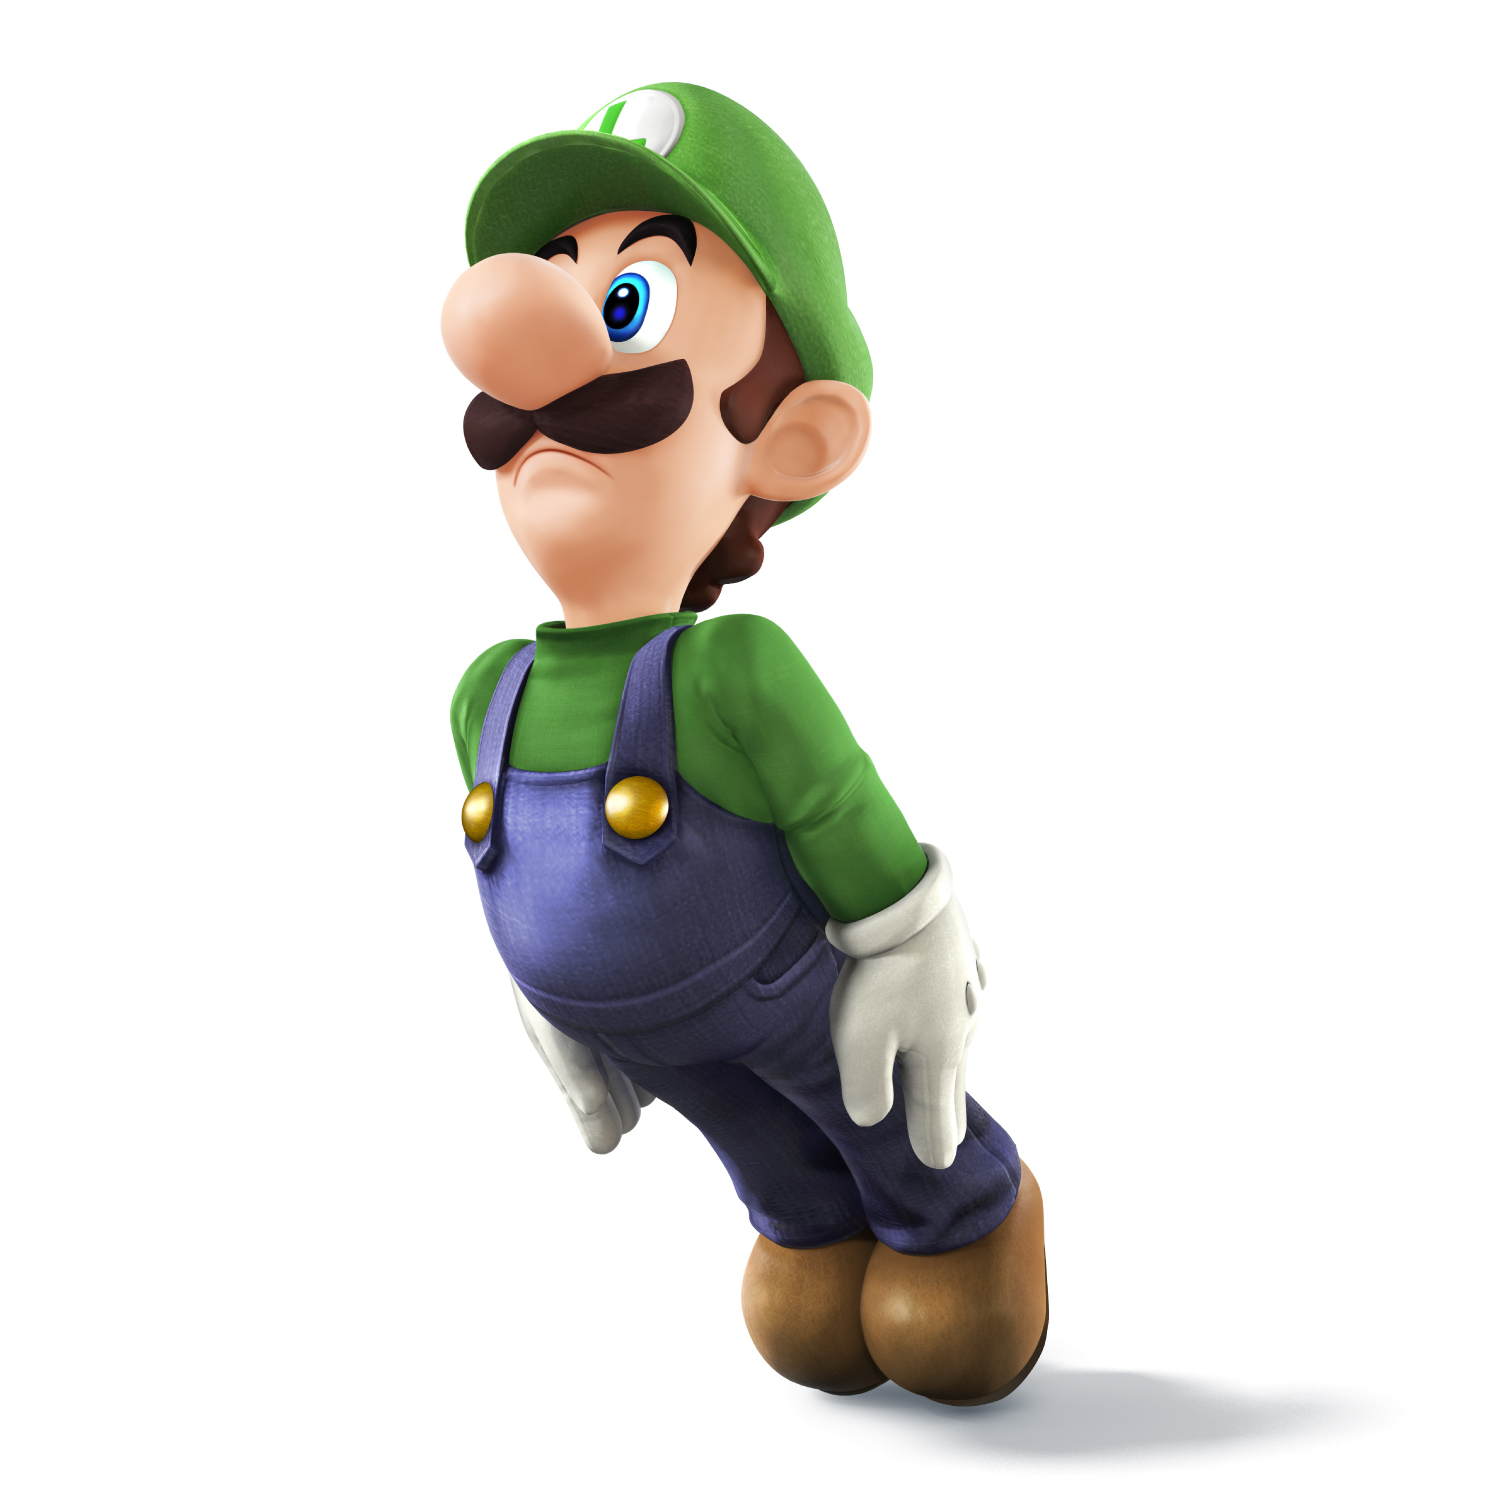 HQ Luigi Wallpapers | File 325.88Kb